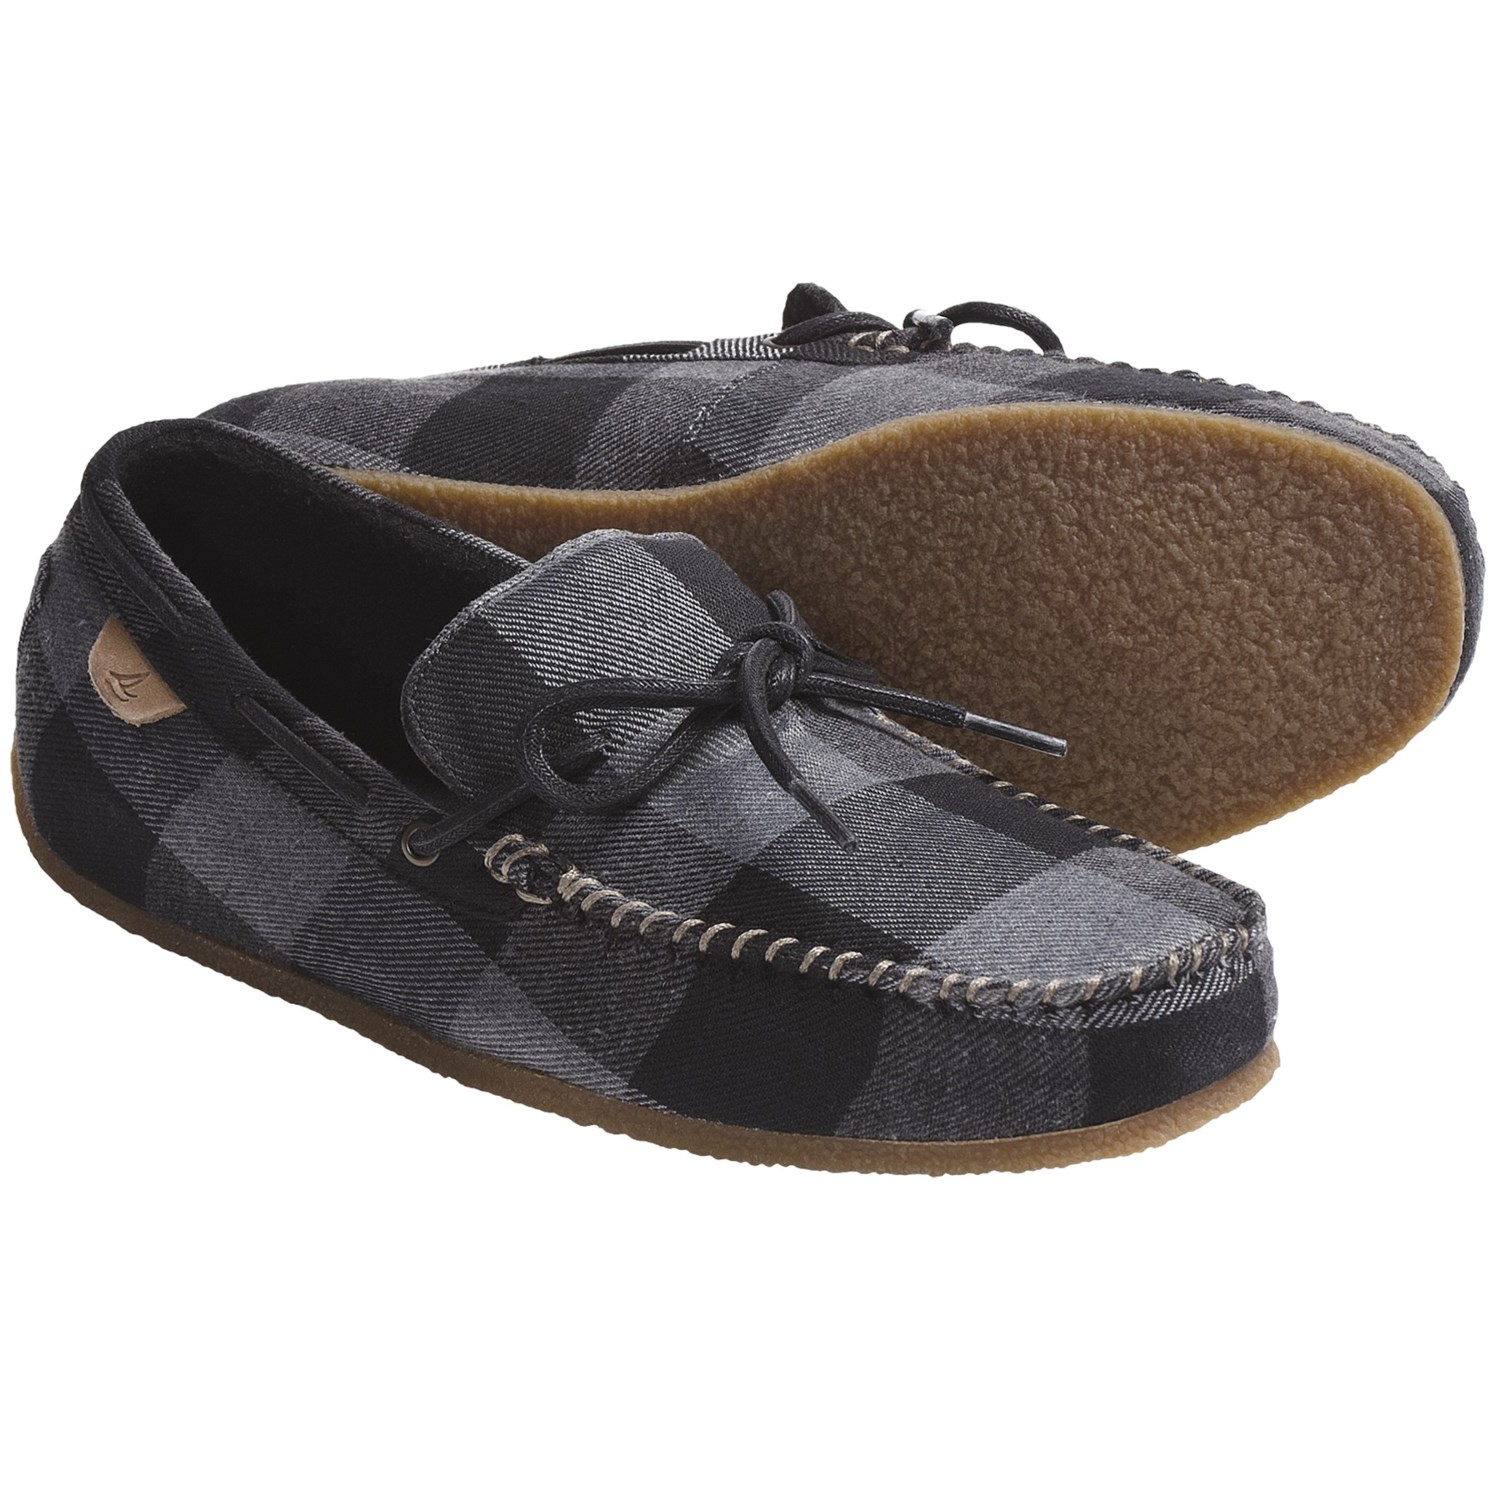 Shop for Sperry Katherine Leather Moccasins at cheswick-stand.tk Visit cheswick-stand.tk to find clothing, accessories, shoes, cosmetics & more. The Style of Your Life.